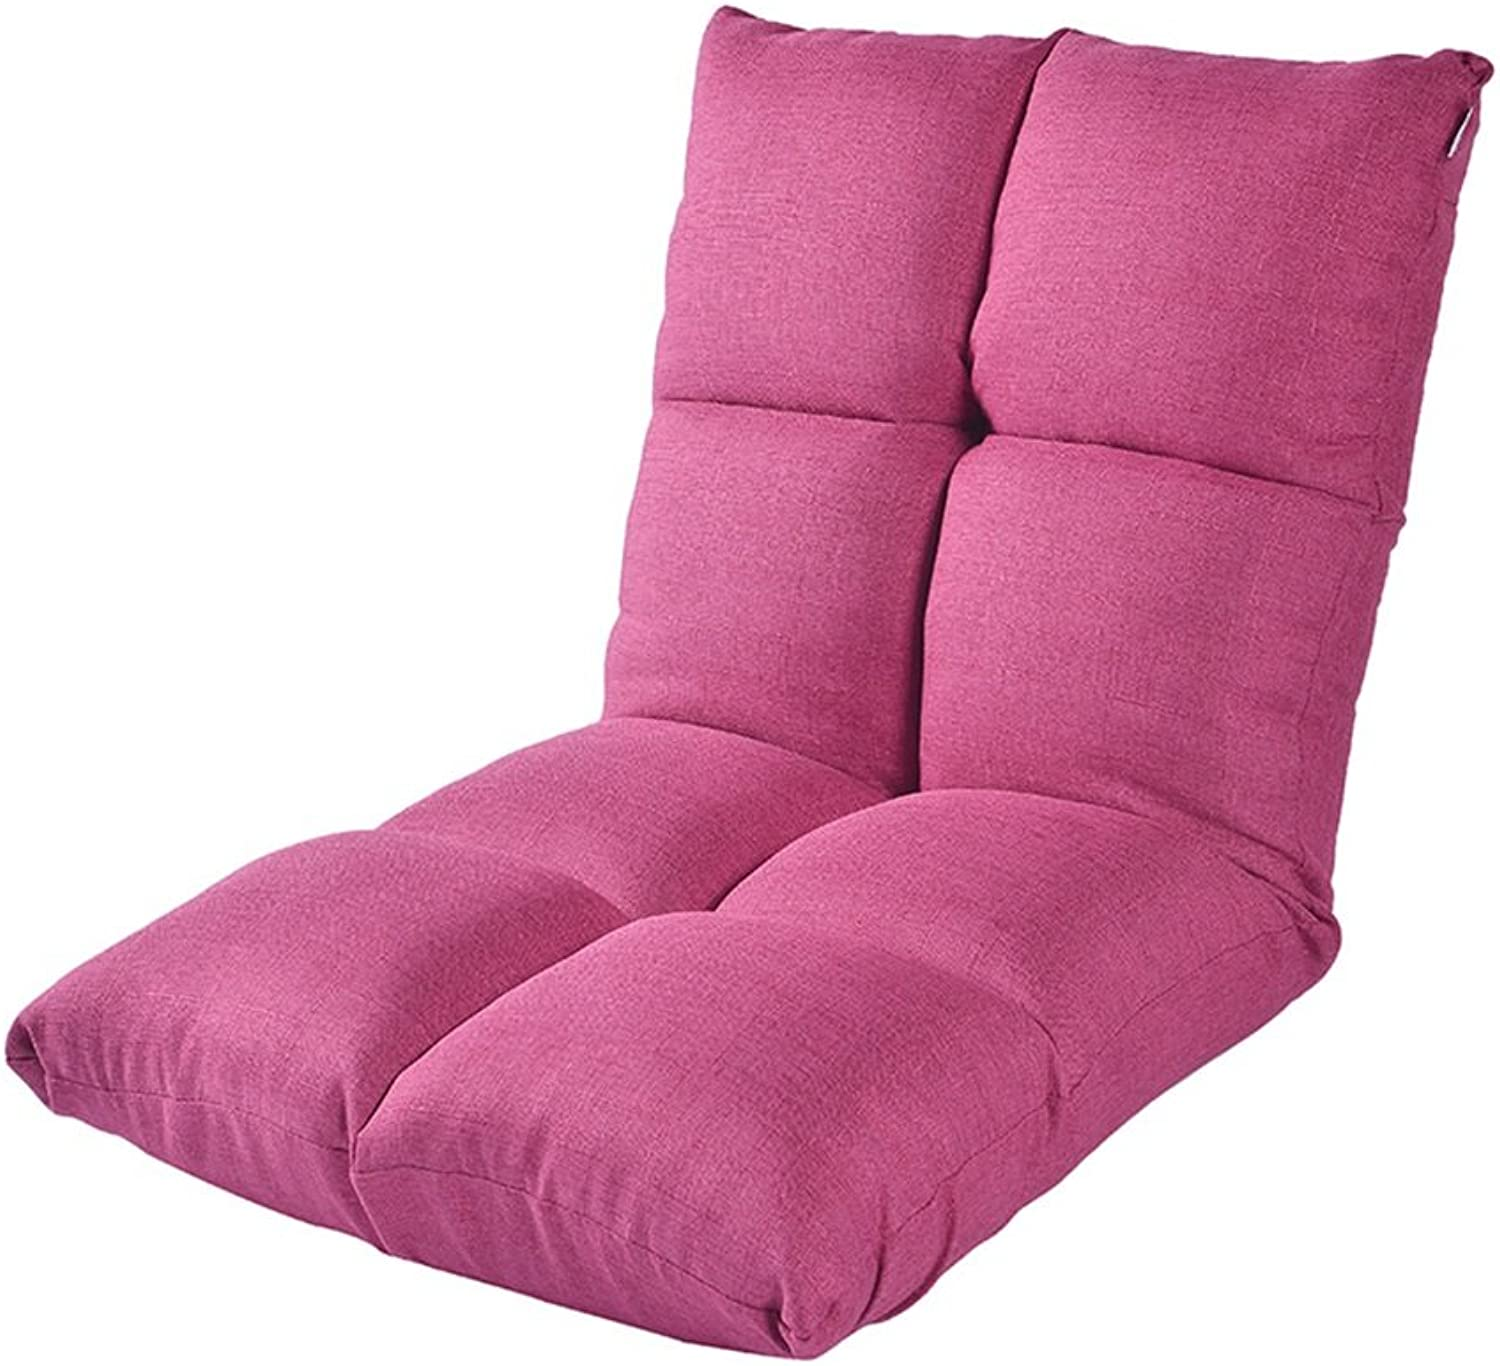 Lazy Sofa Tatami Single Small Sofa Japanese Folding Bed Chair Dormitory Balcony Lunch Break Recliner Chairs (color   Pink)